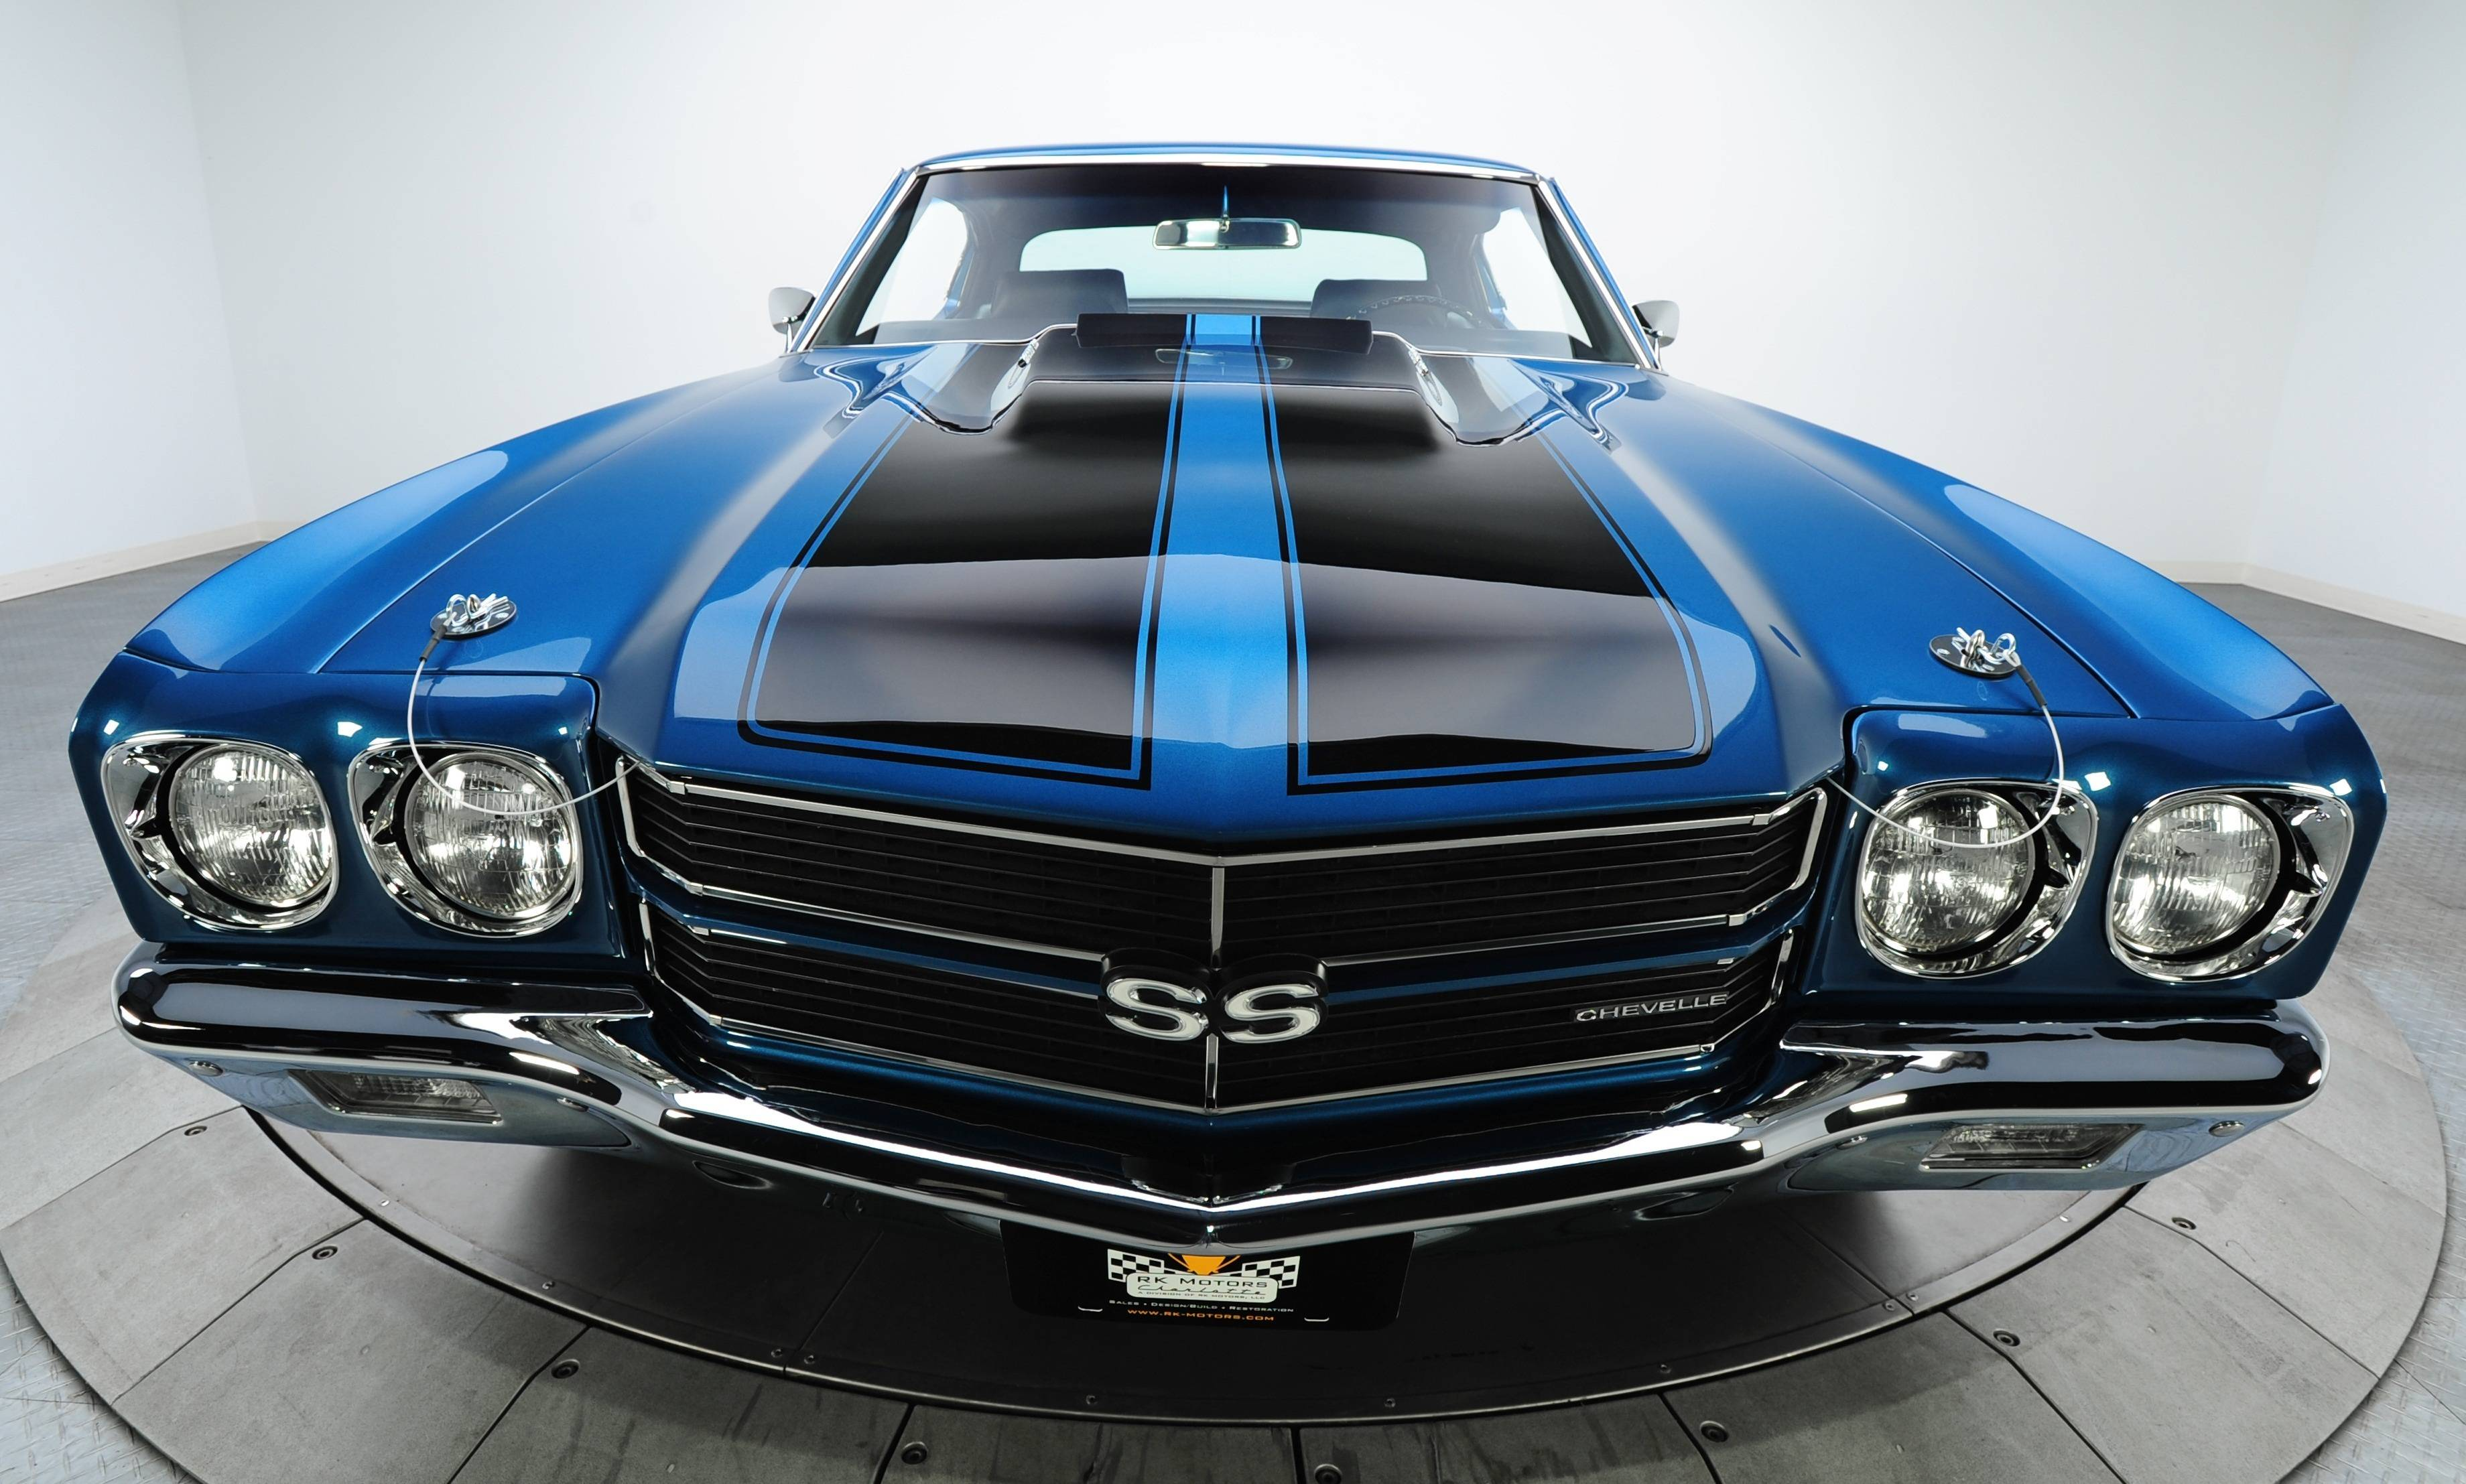 1970 Chevelle SS Wallpapers - Wallpaper Cave  1970 Chevelle S...